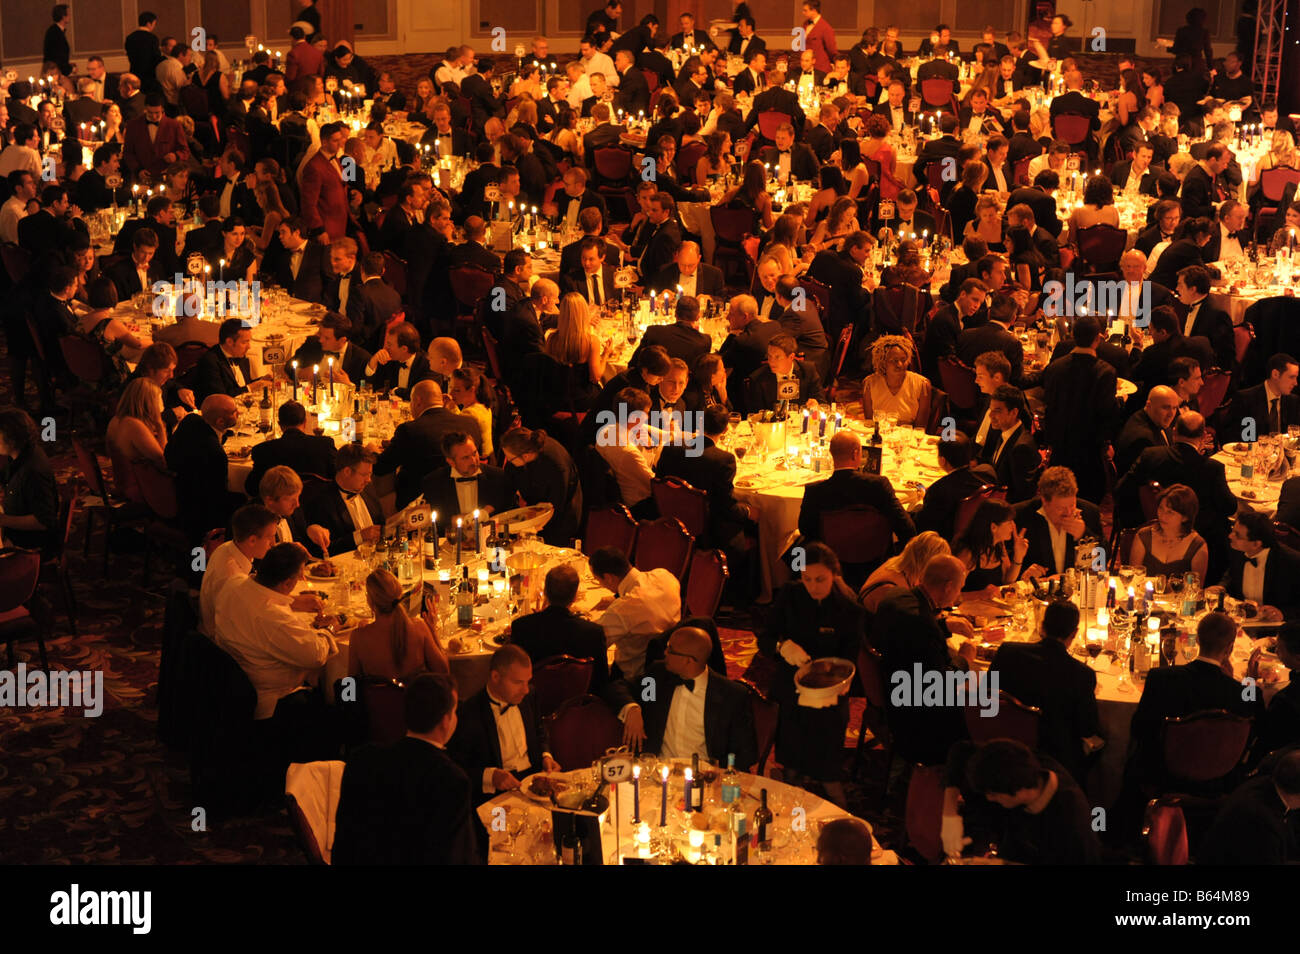 Large group of people seated at tables at evening business formal black tie event. Smart gala dinner, elevated view. Stock Photo